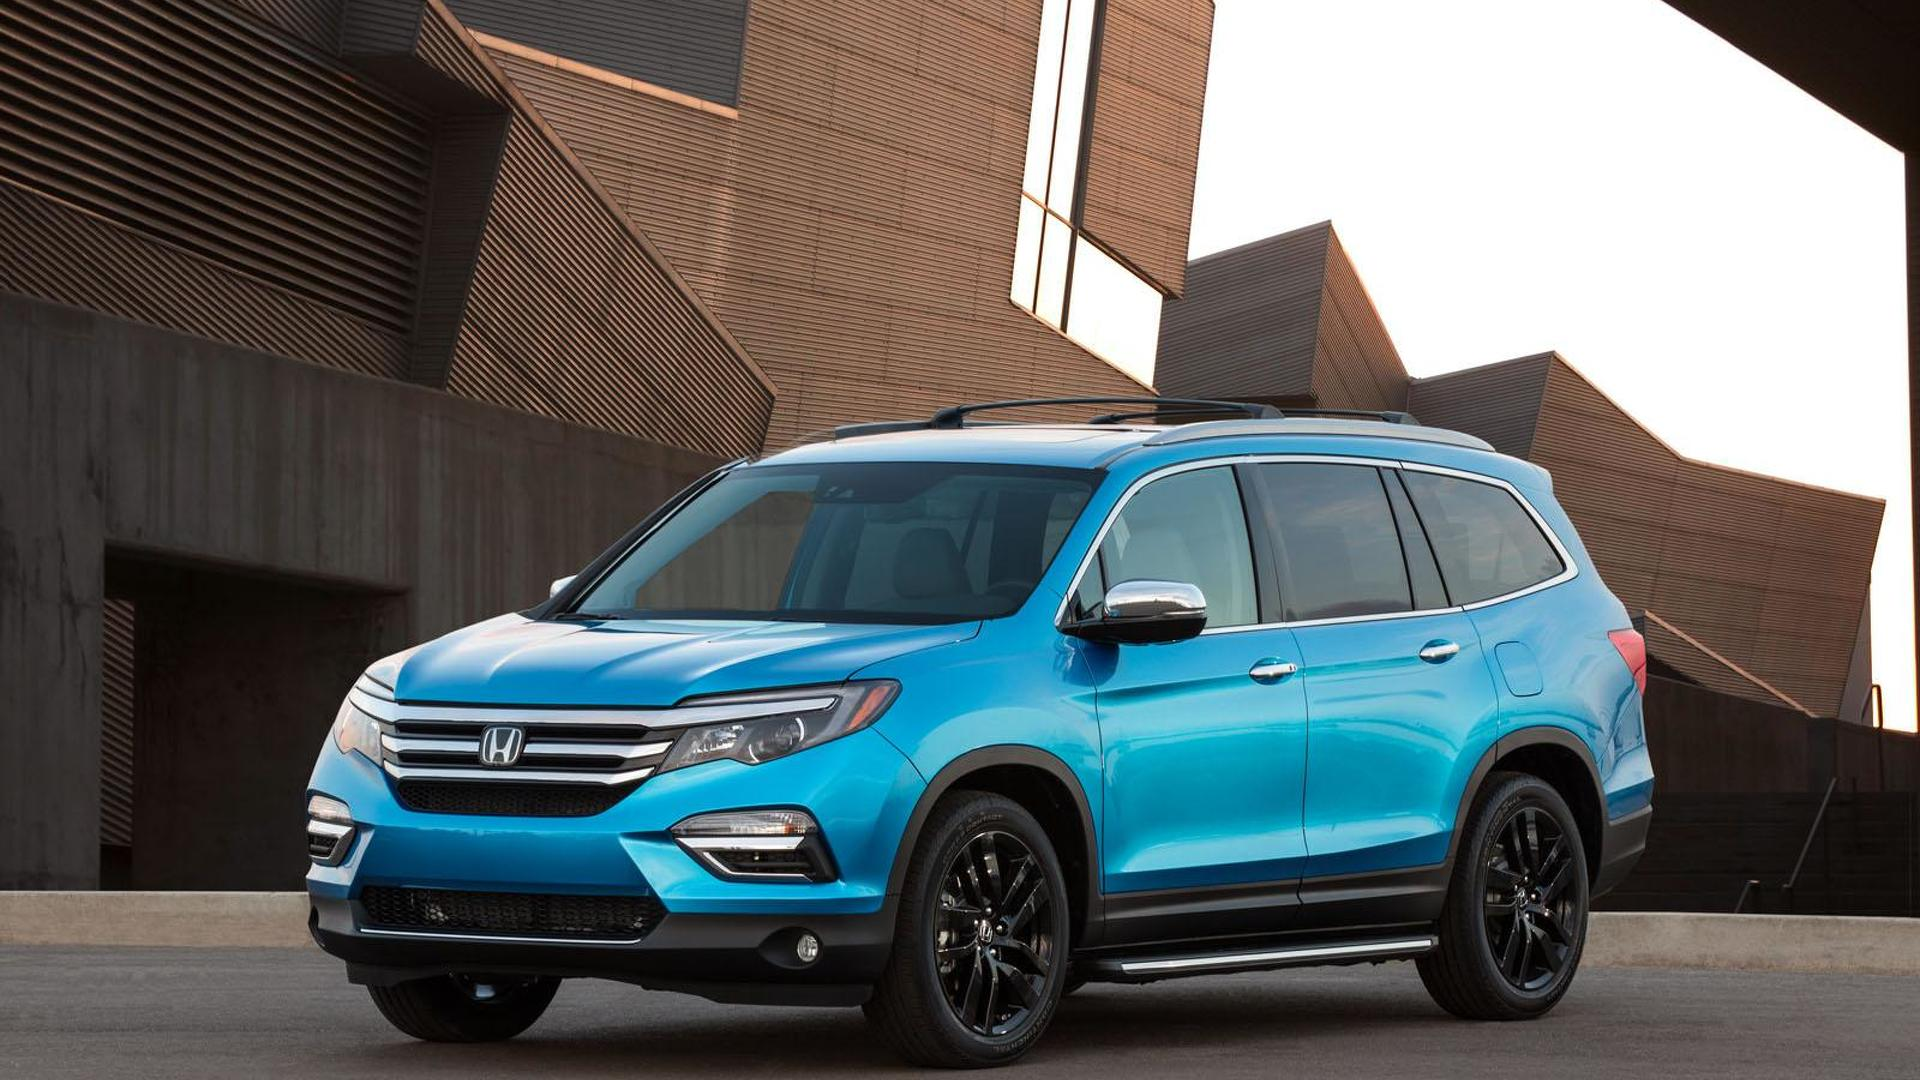 Honda Pilot Accessories >> 2016 Honda Pilot To Be Offered With An Assortment Of Styling